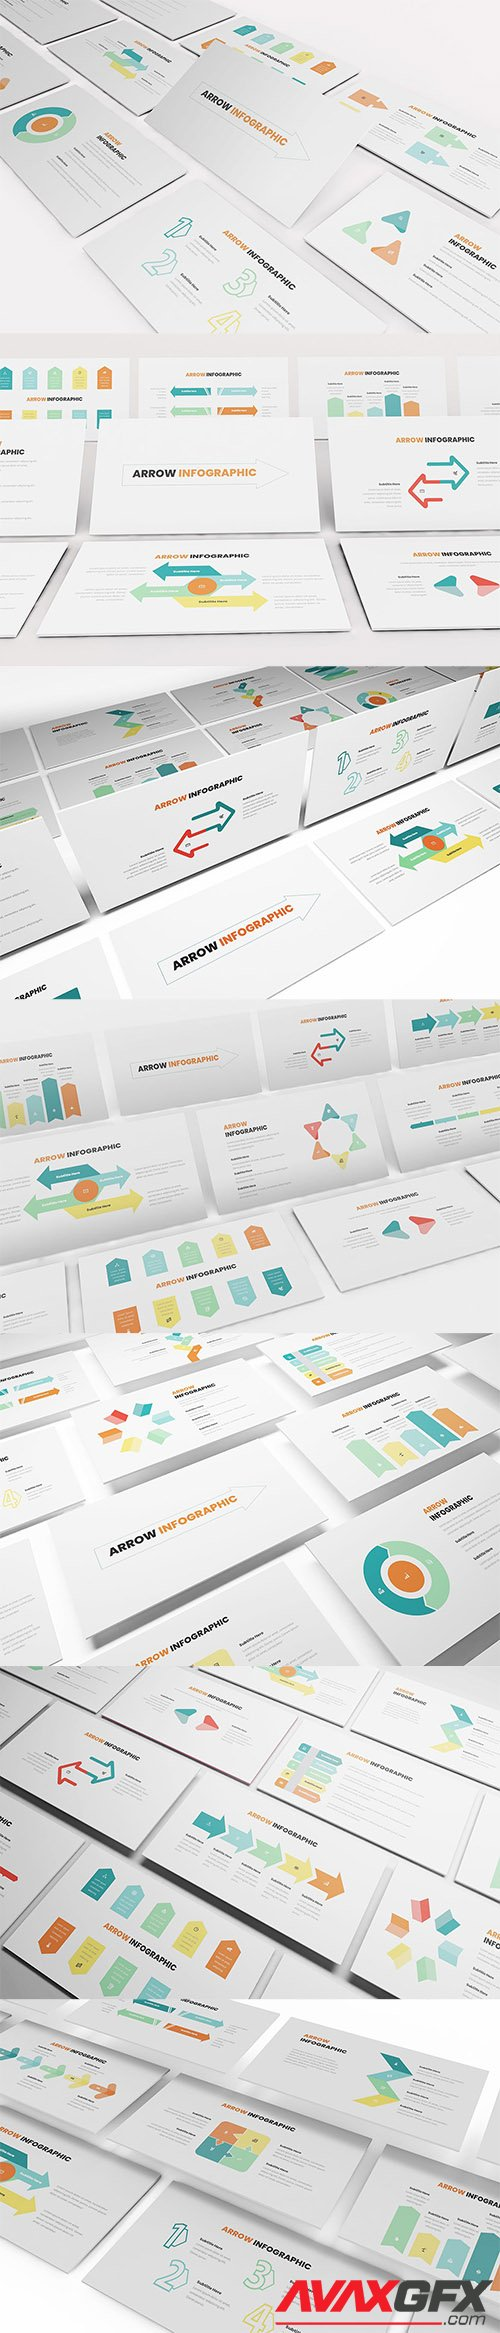 Arrow Infographic PowerPoint, Keynote, Google Slides Templates